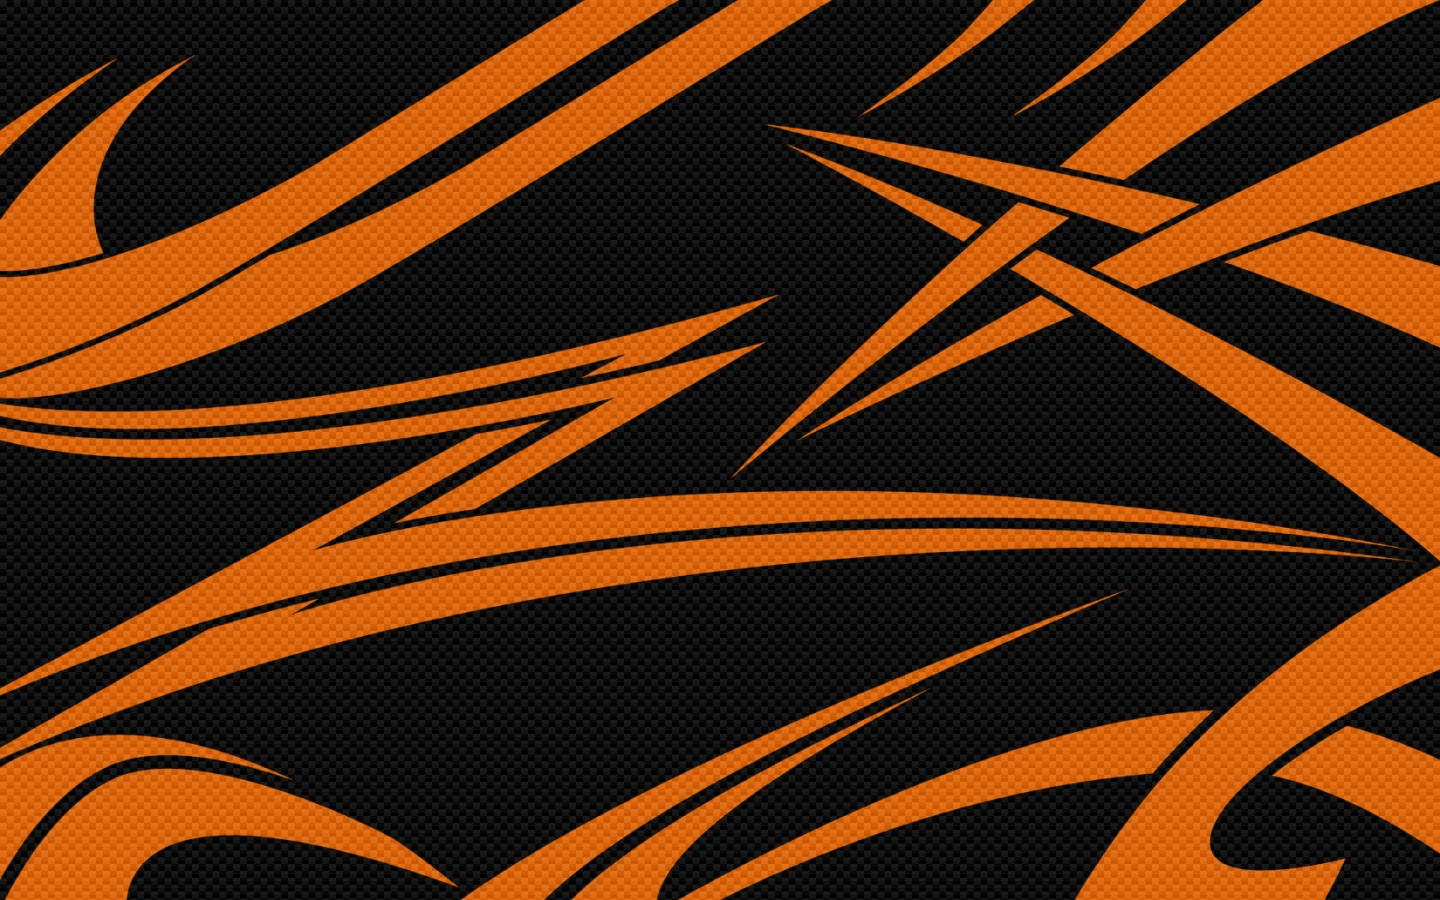 http://1.bp.blogspot.com/_2UbsSBz9ckE/TFsVME68COI/AAAAAAAABTg/j_u8NmIdnDE/s1600/black-%26-orange-carbon-wallpapers_1440x900.jpg